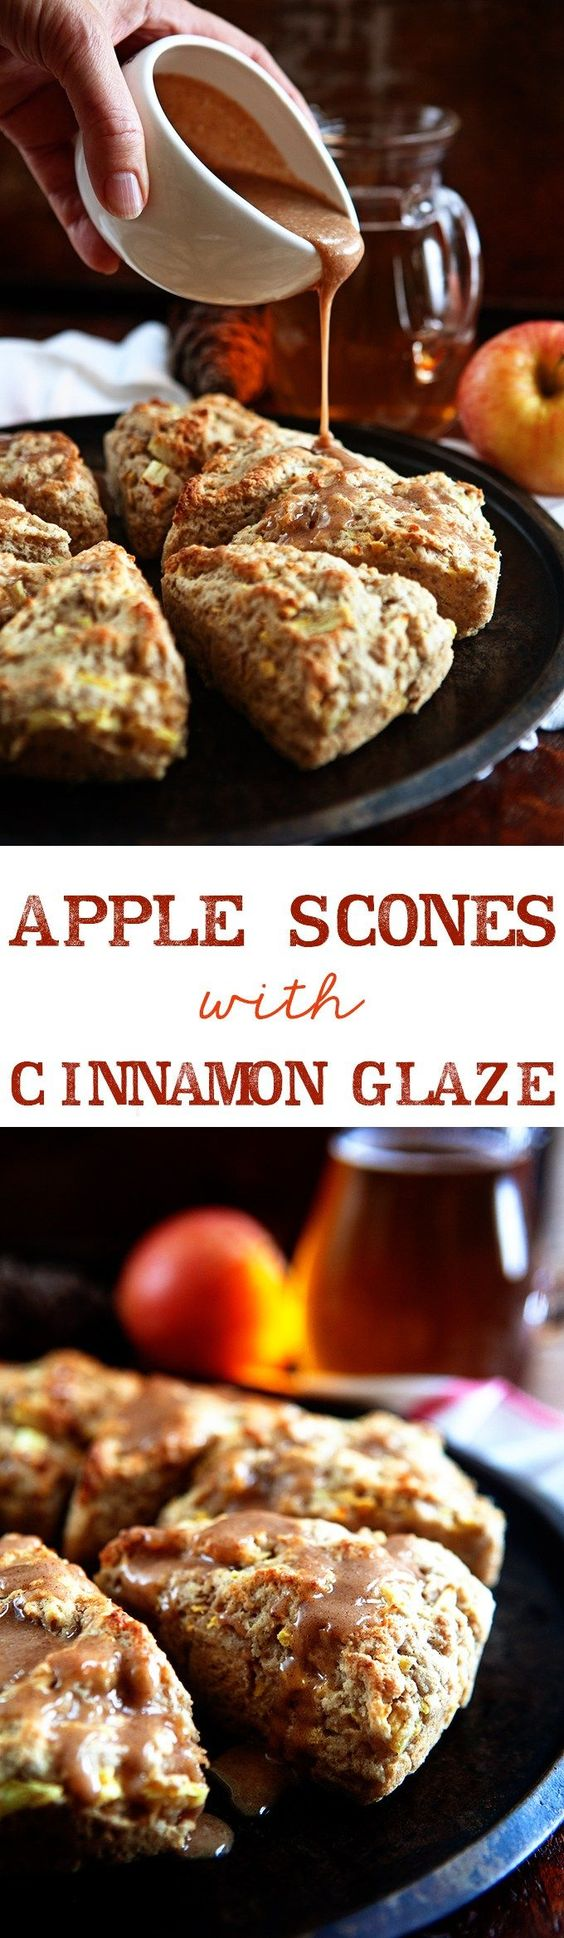 Apple Scones with Apple Cider Cinnamon Glaze: